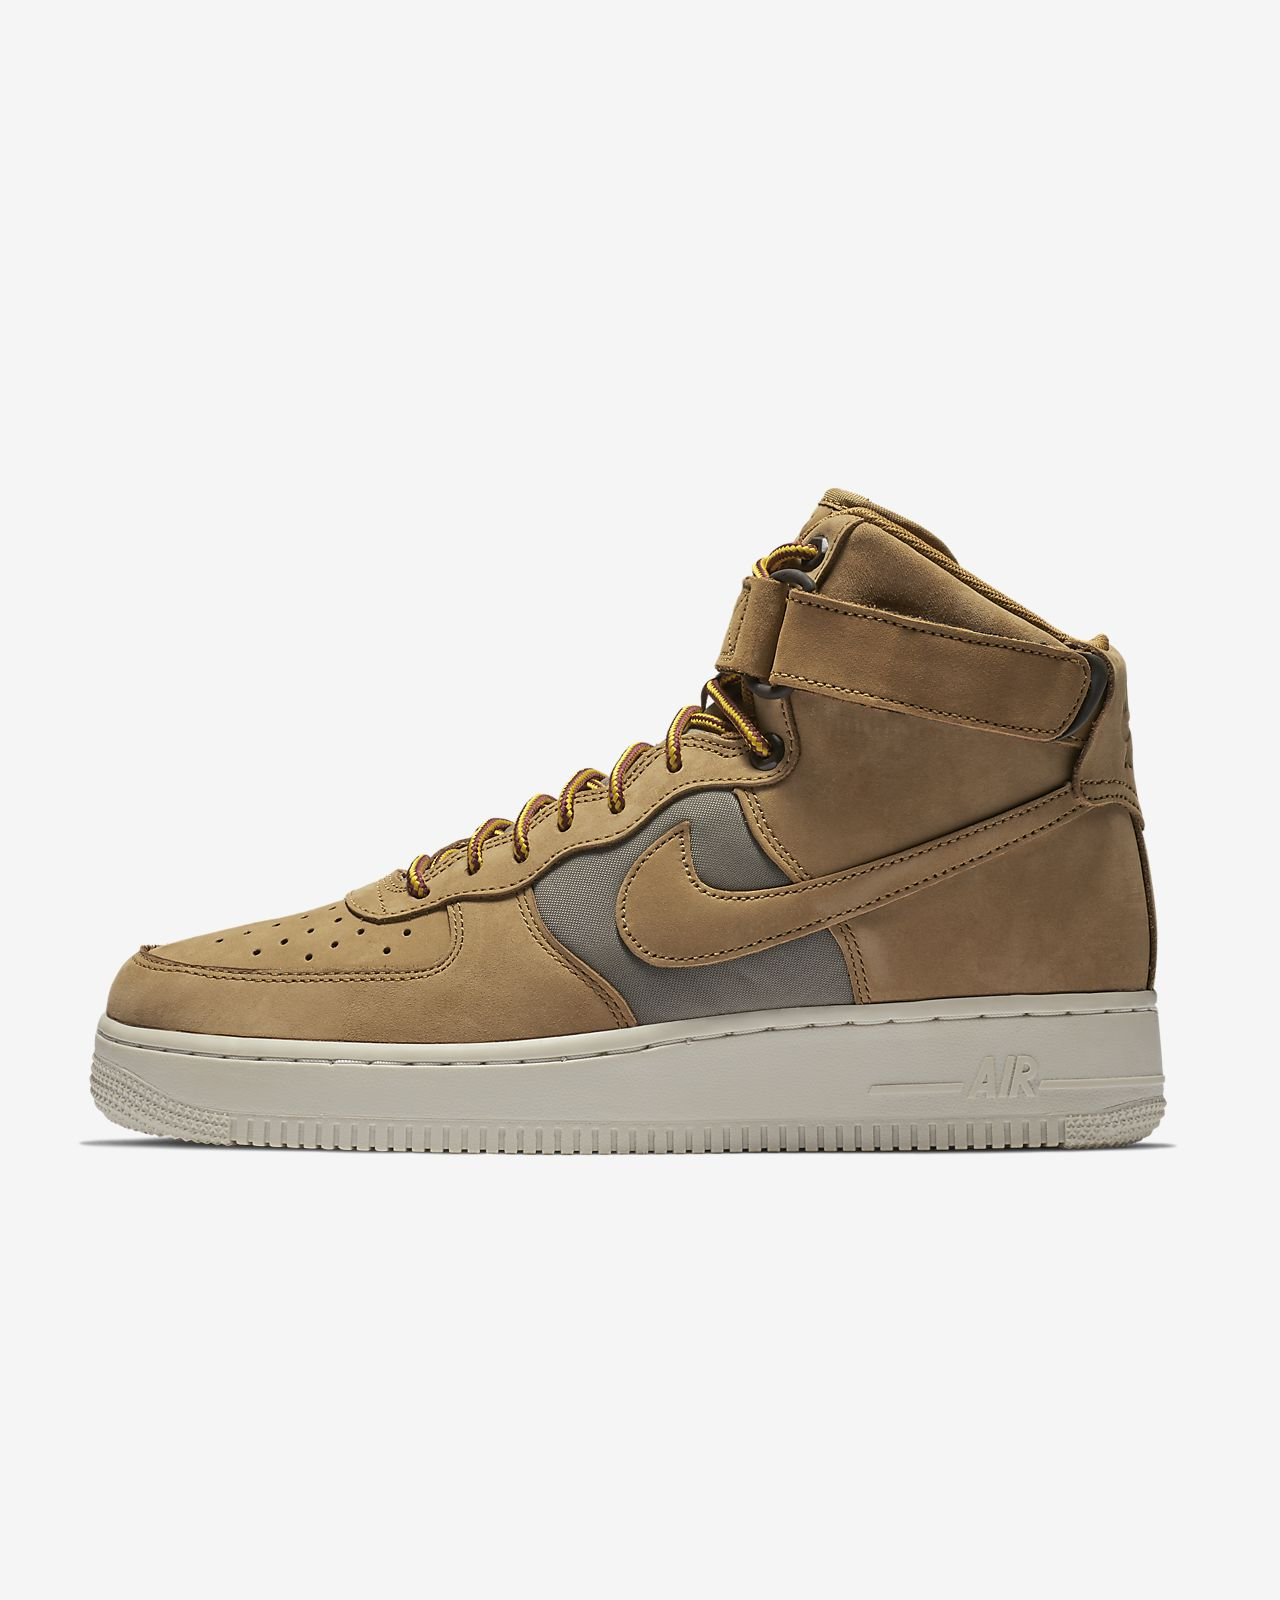 Nike Air Force 1 High '07 Premium Men's Shoe